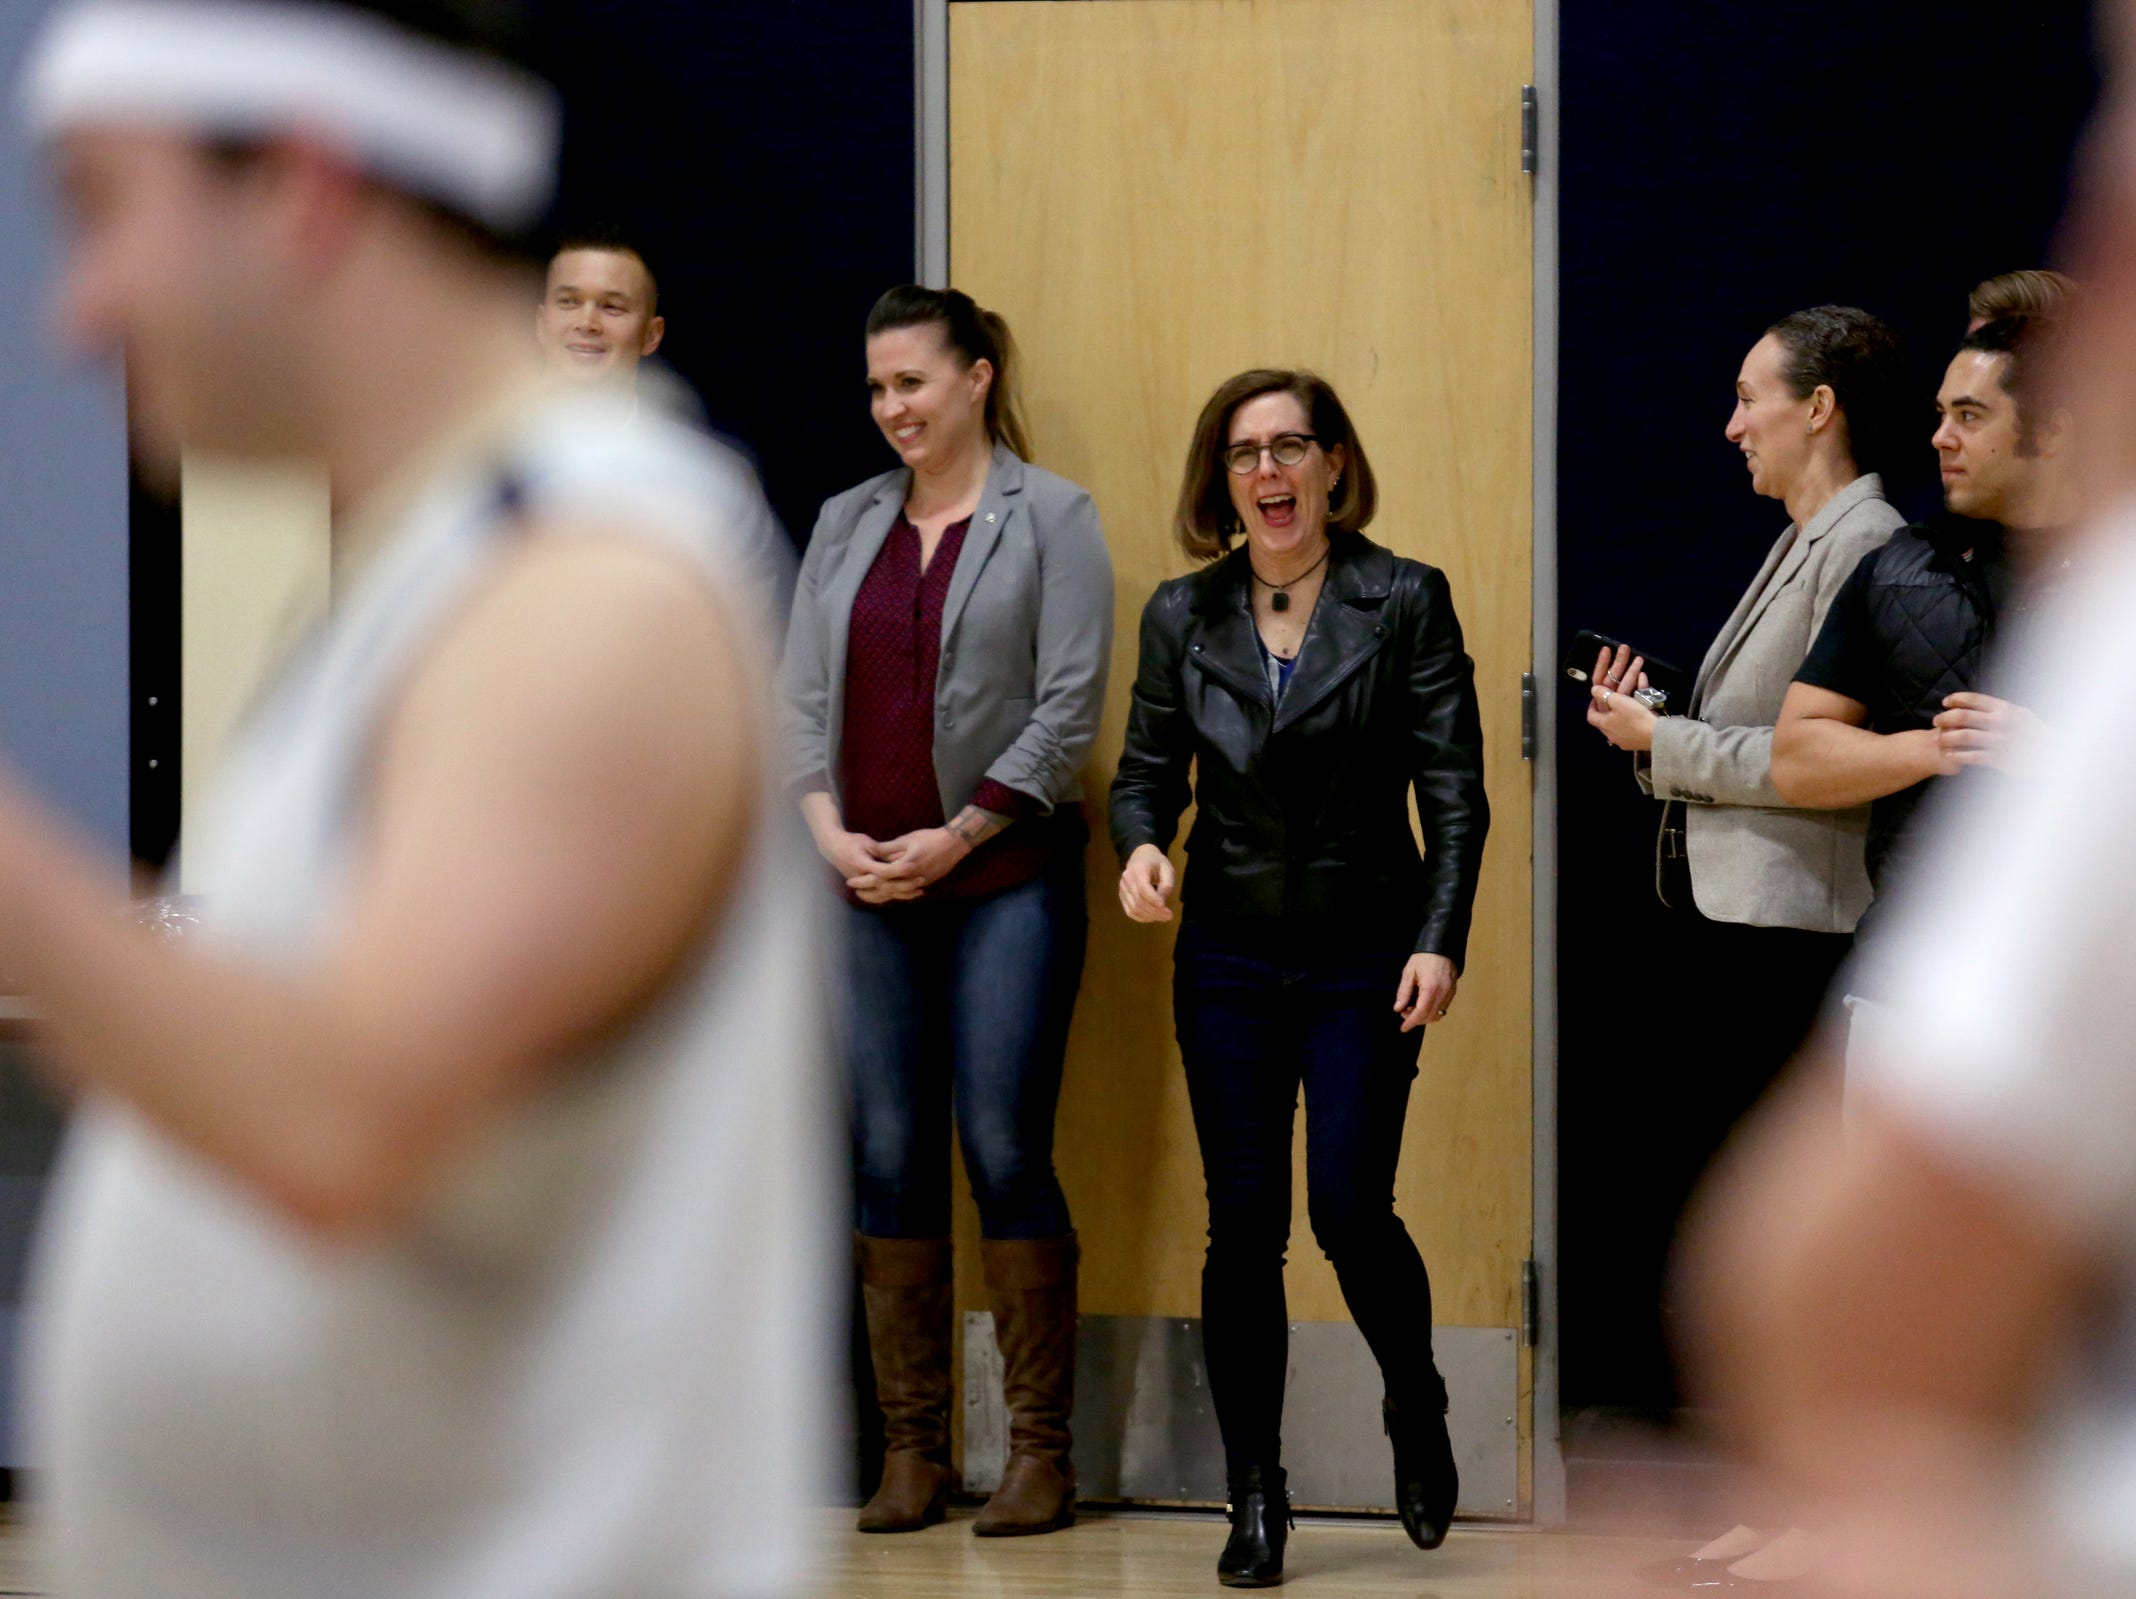 Gov. Kate Brown attends the second annual House vs. Senate charity basketball tournament at the Boys & Girls Club in Salem on March 13, 2019. The tournament raised more than $10,000 for the Oregon Alliance of Boys & Girls Clubs.